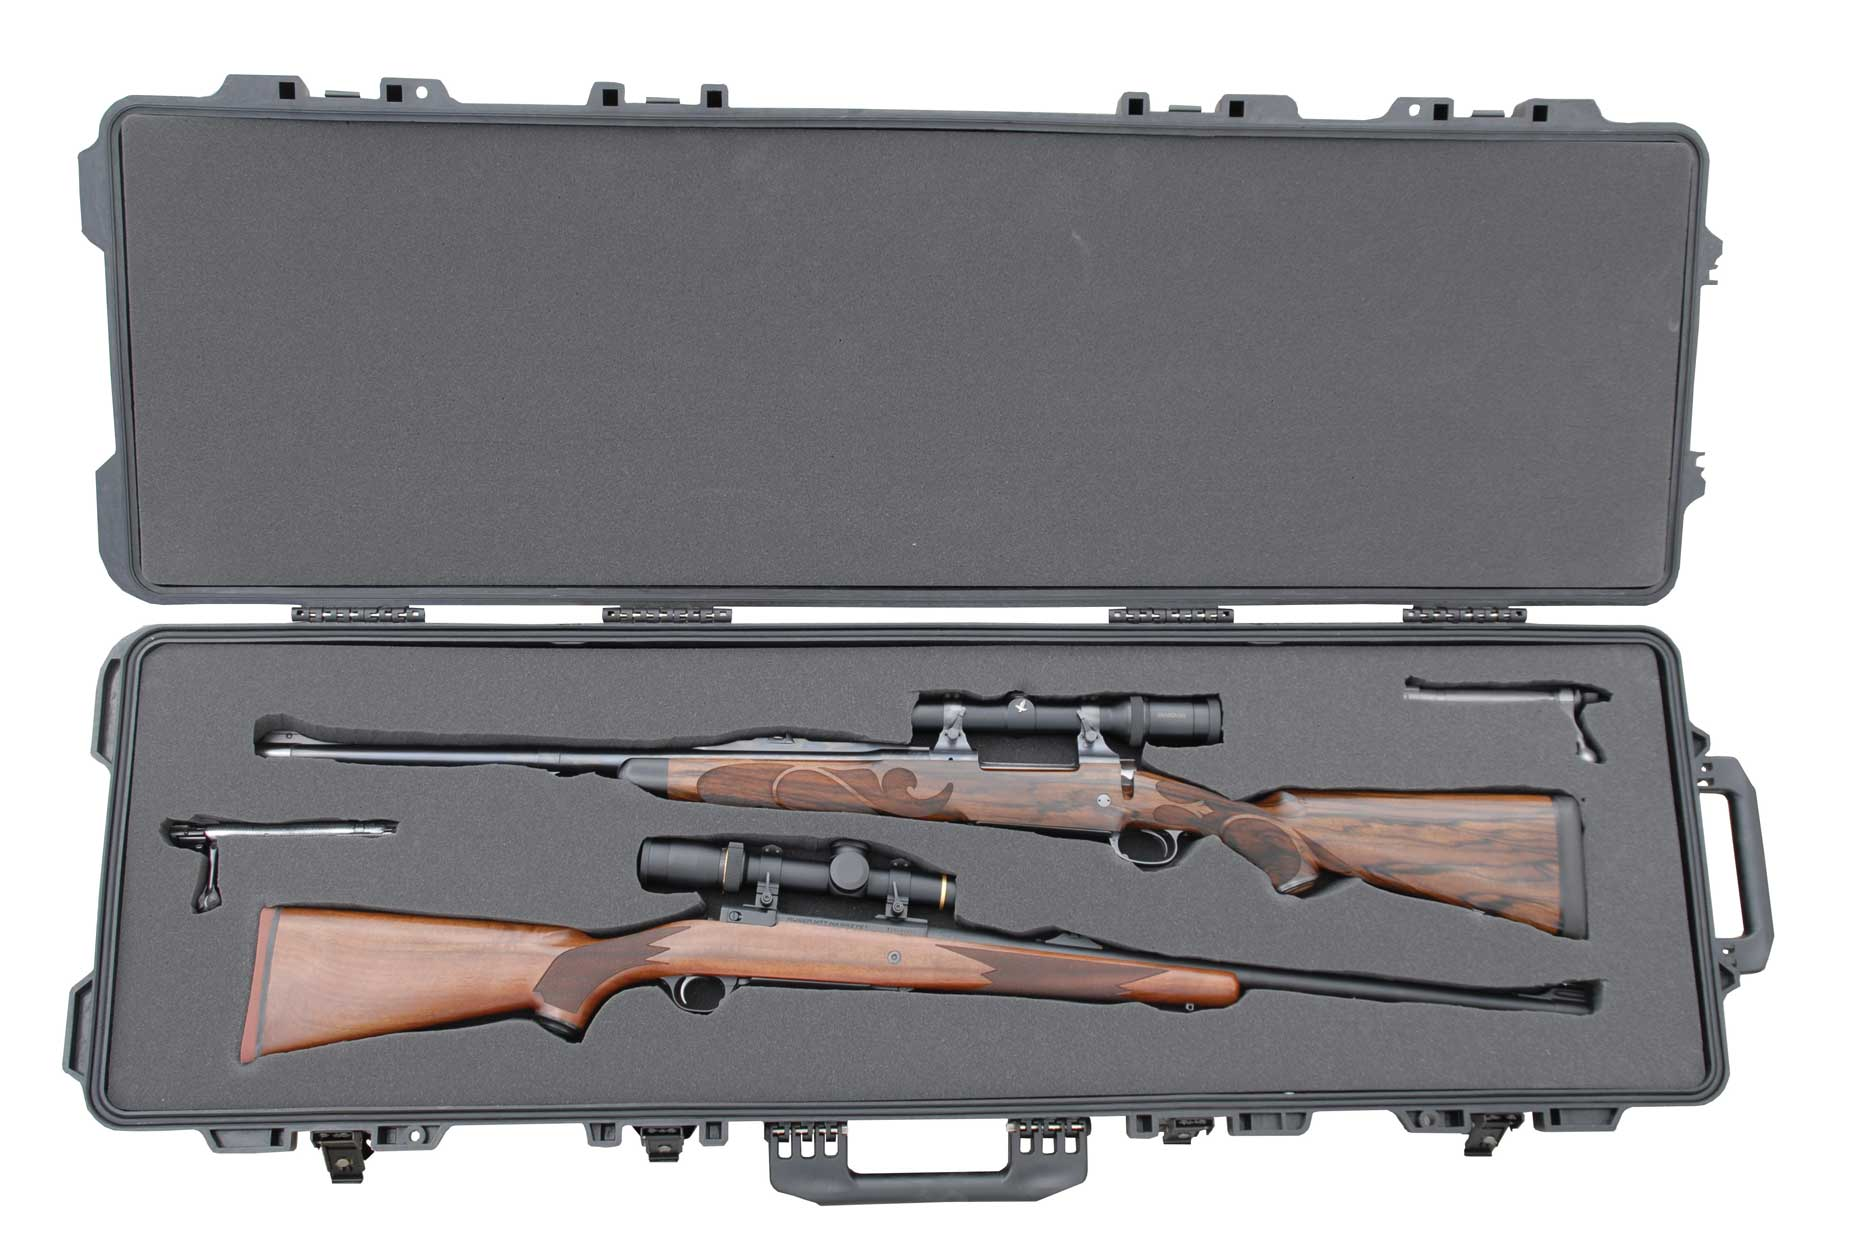 Boyt Harness Company's H51 Double Long Gun Case